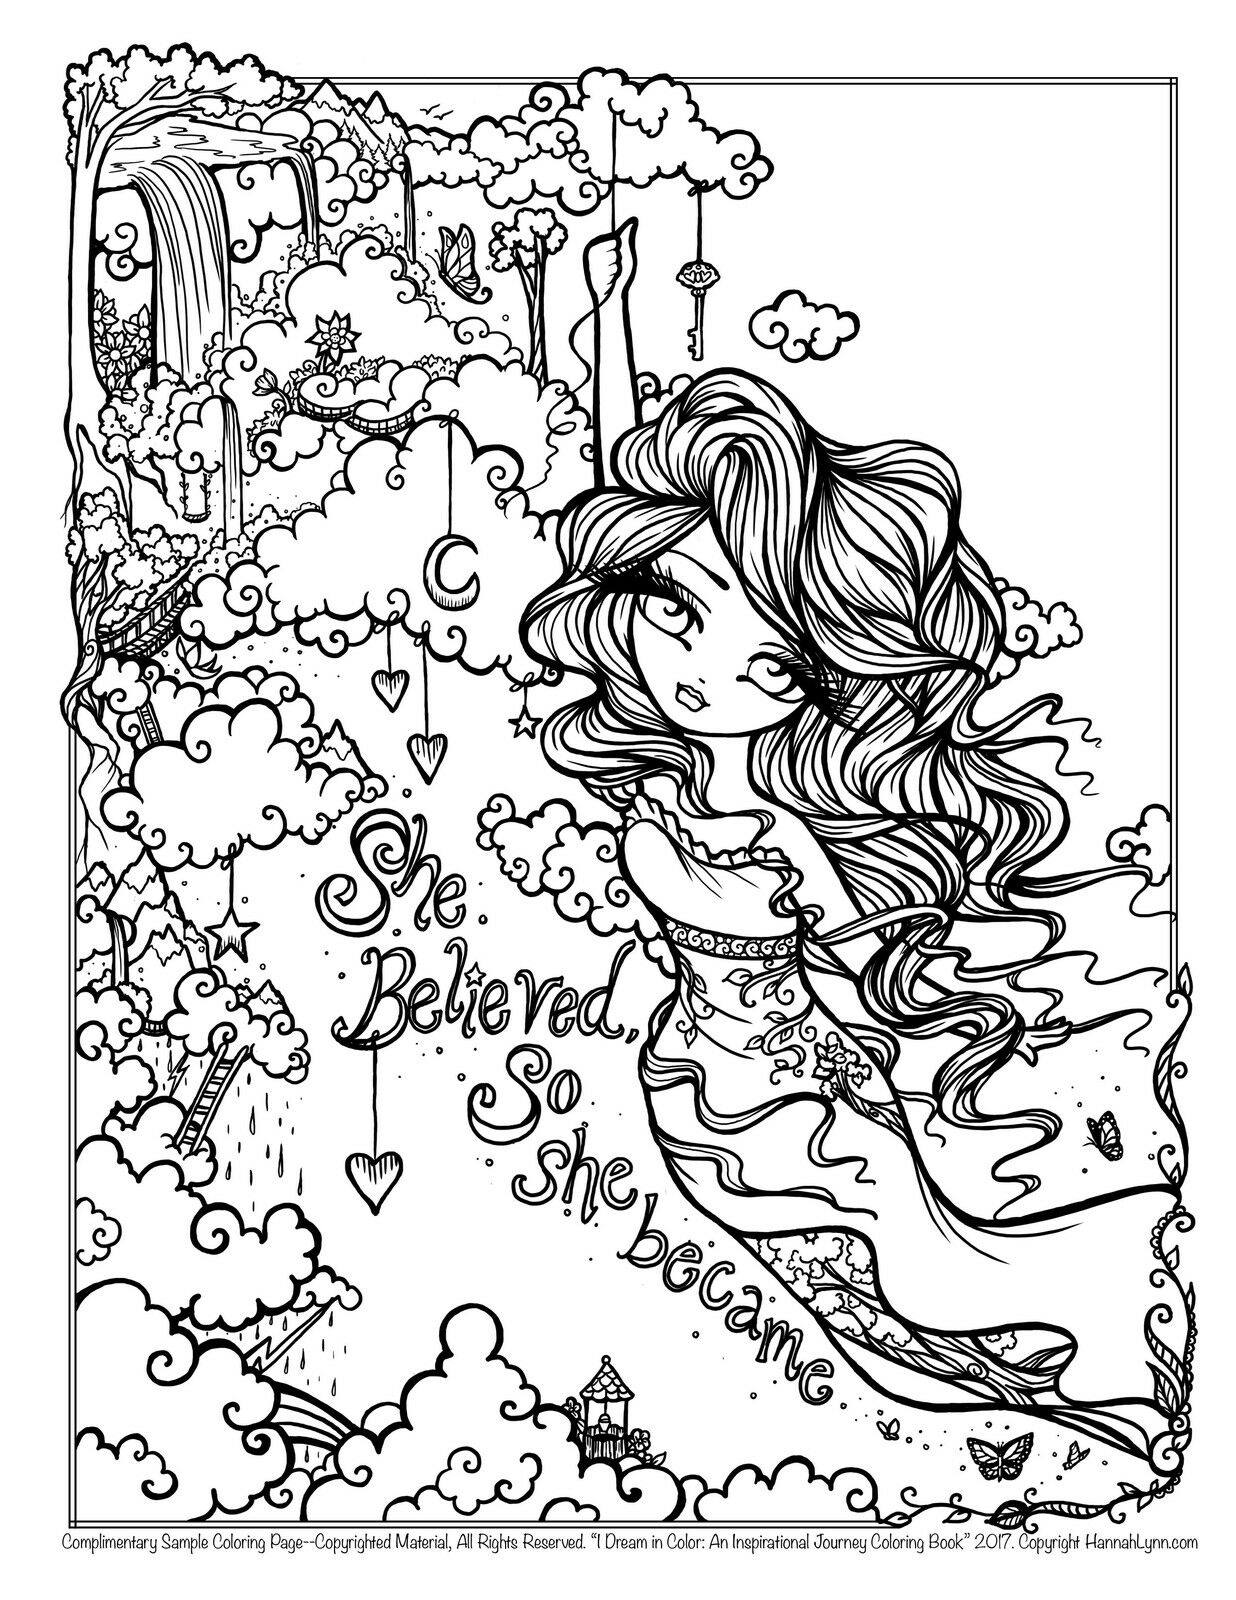 I Dream In Color An Inspirational Journey Coloring Book By Hannah